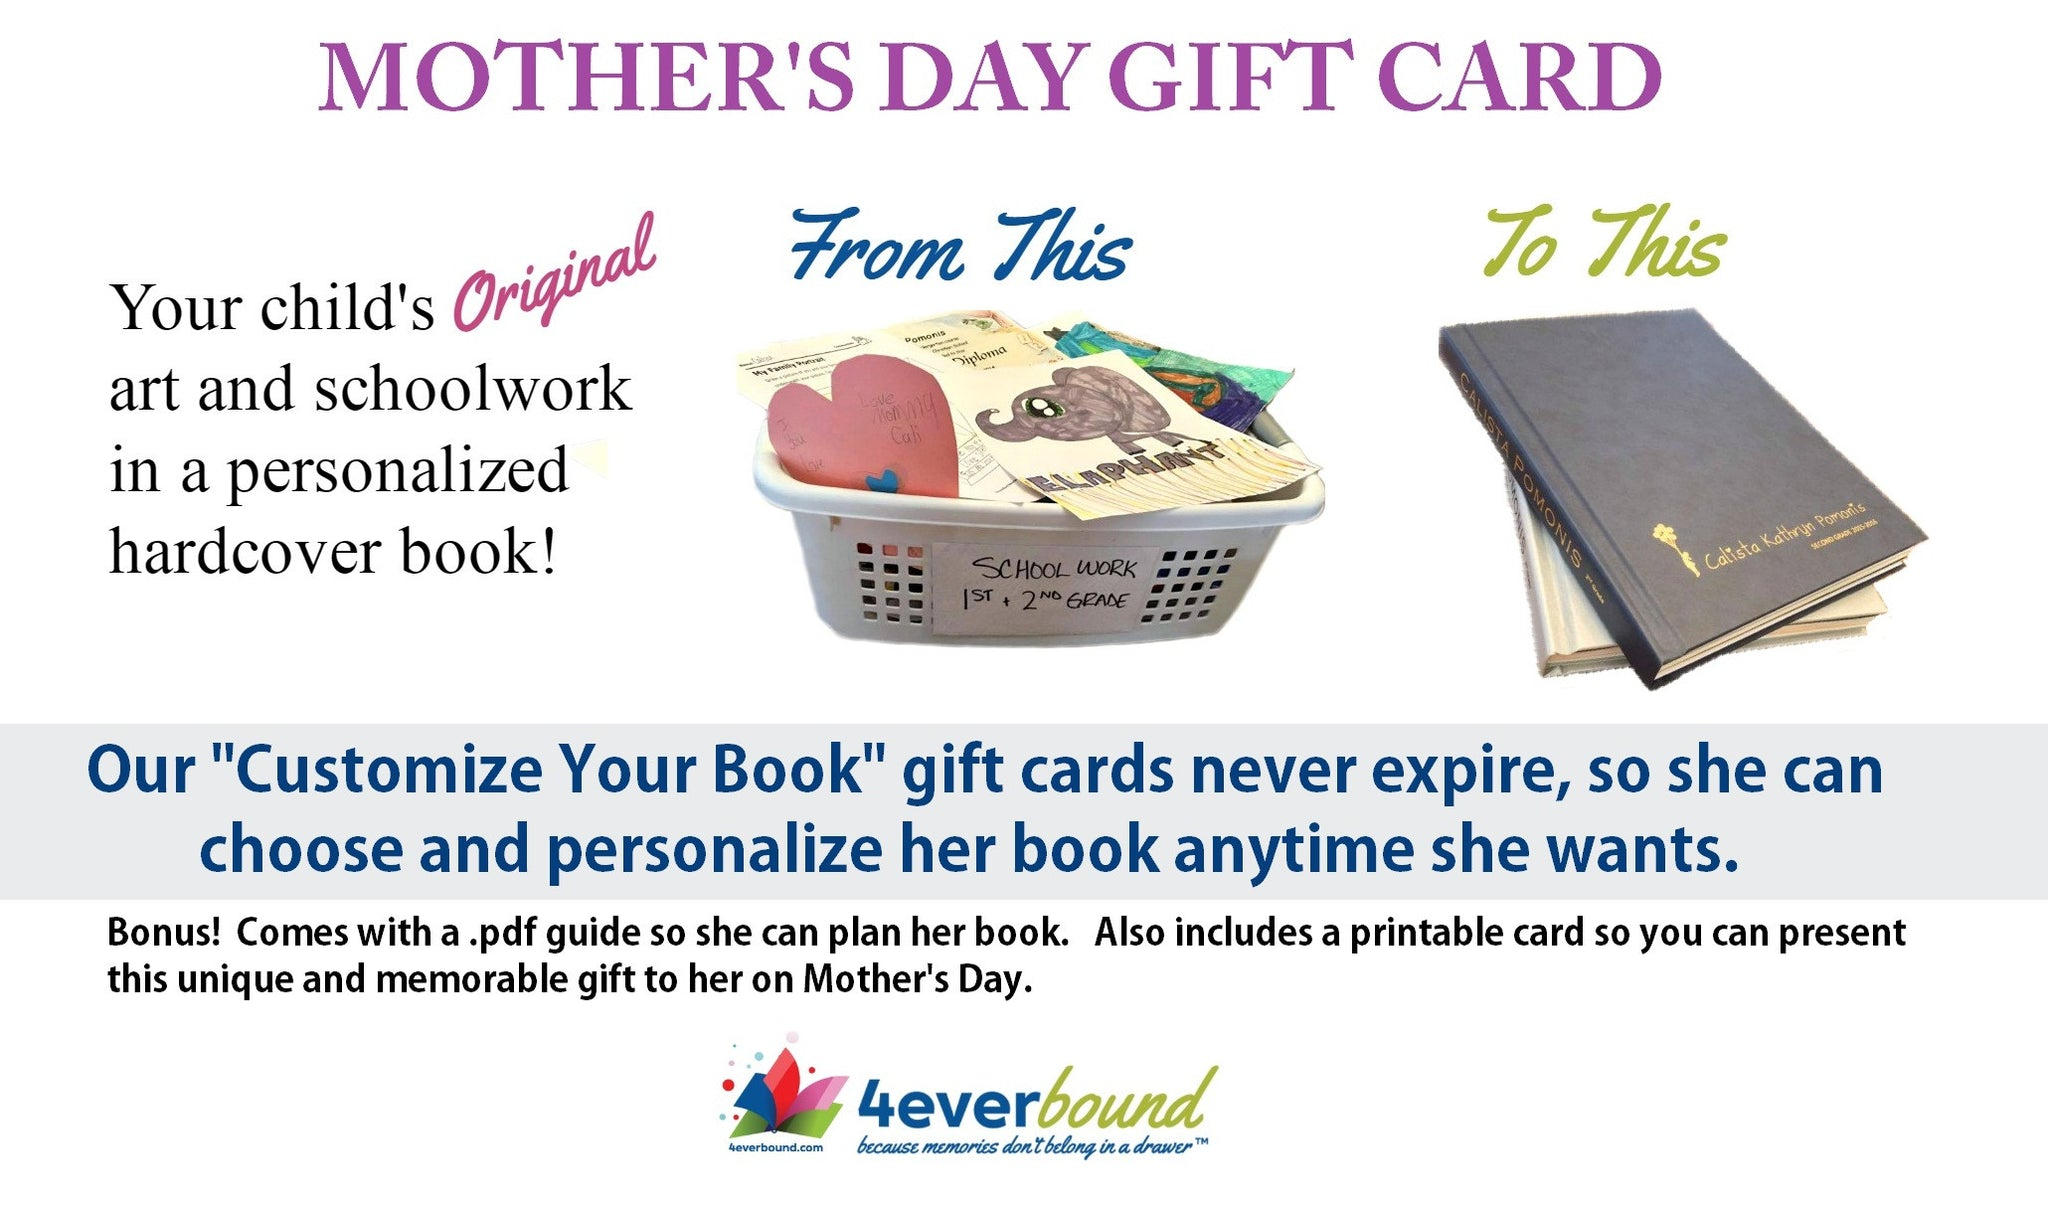 Mother's Day Gift Cards for 4everBound Personalized Hardcover Books